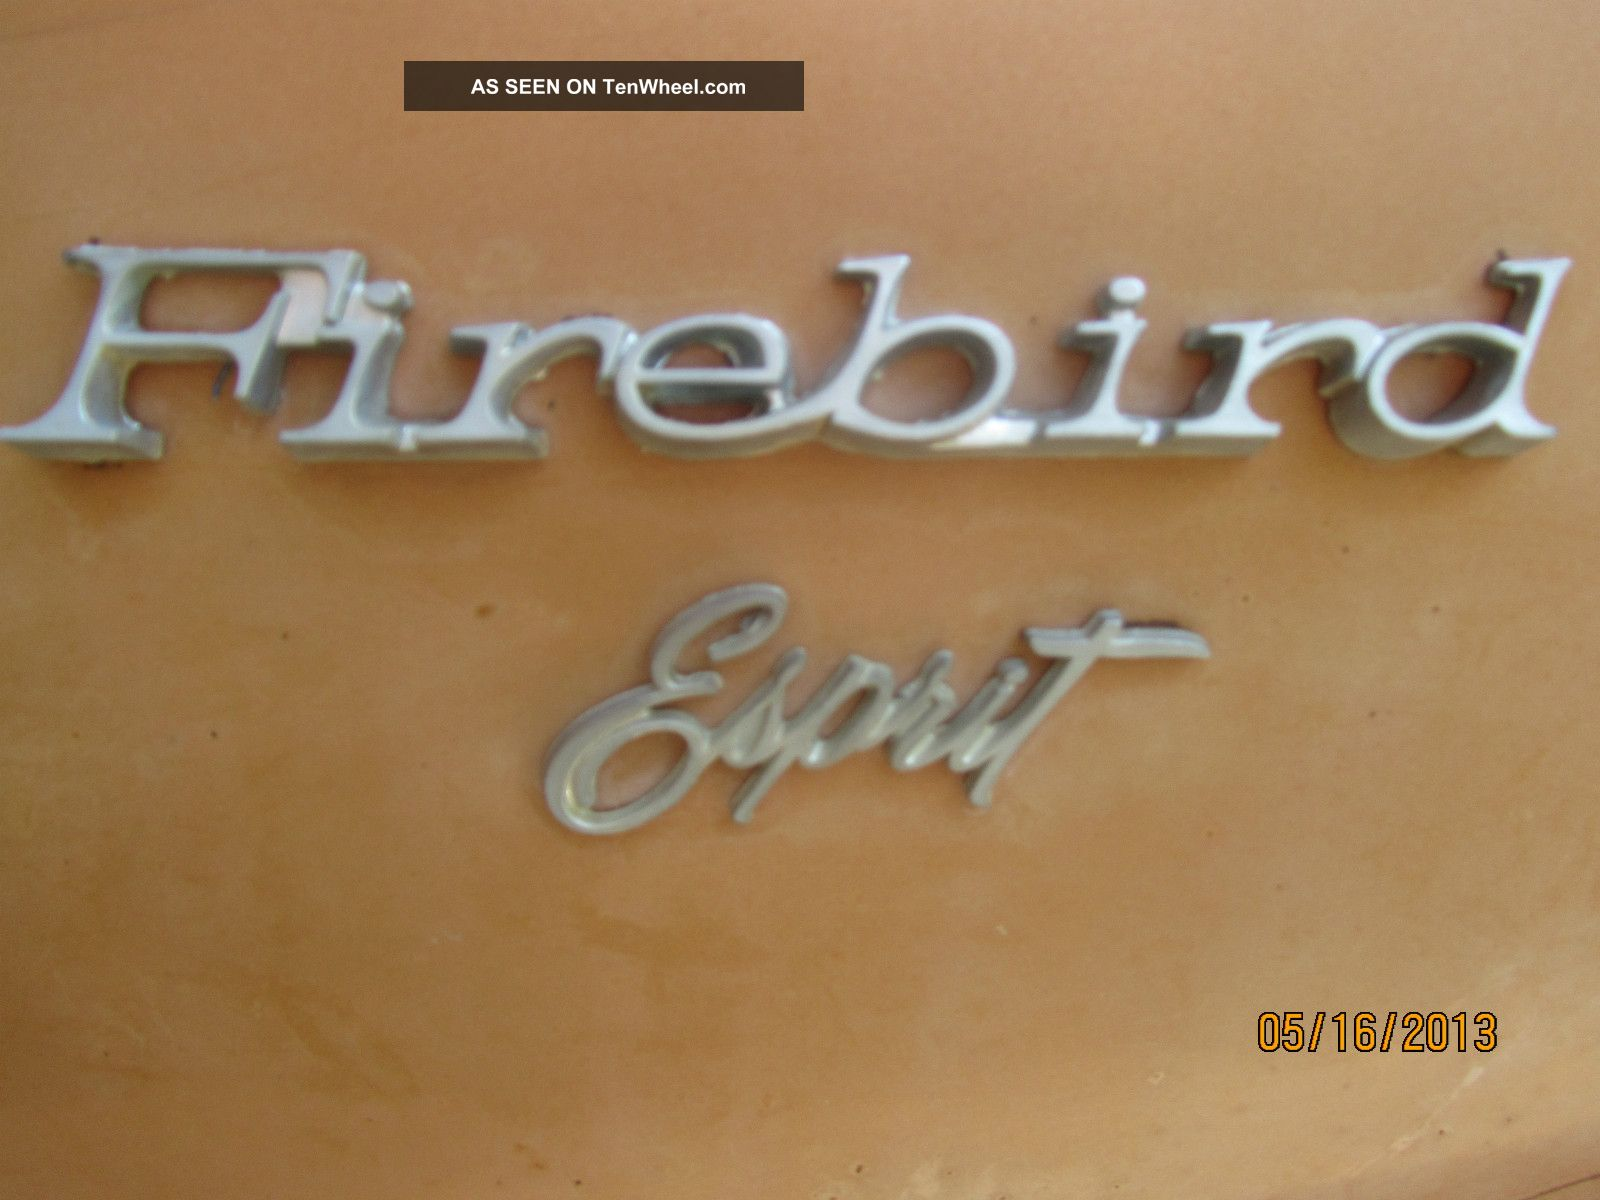 1977 Firebird In Condition Firebird photo